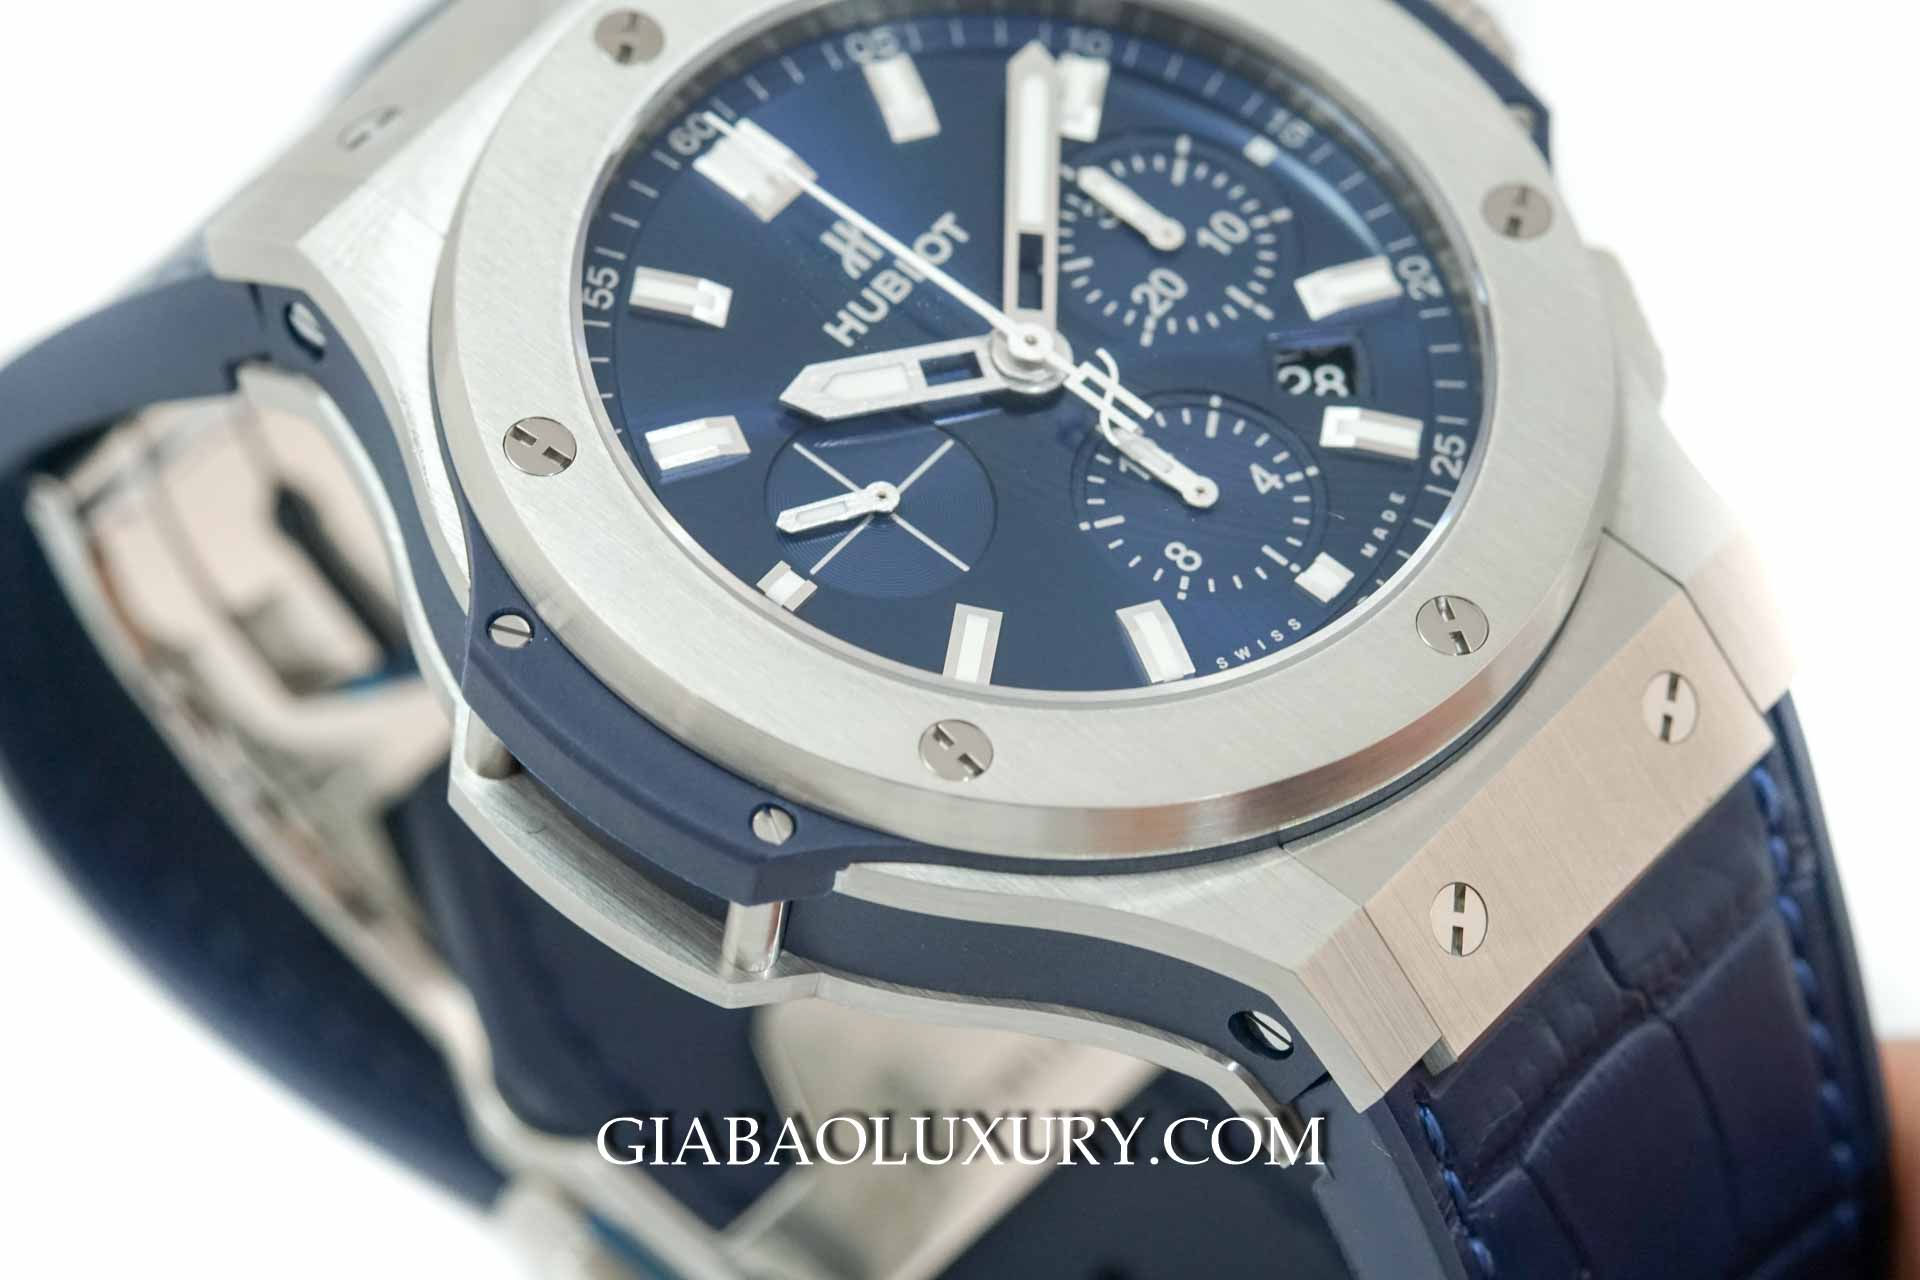 Đồng Hồ Hublot Big Bang Steel Blue Chronograph 44mm 301.SX.7170.LR